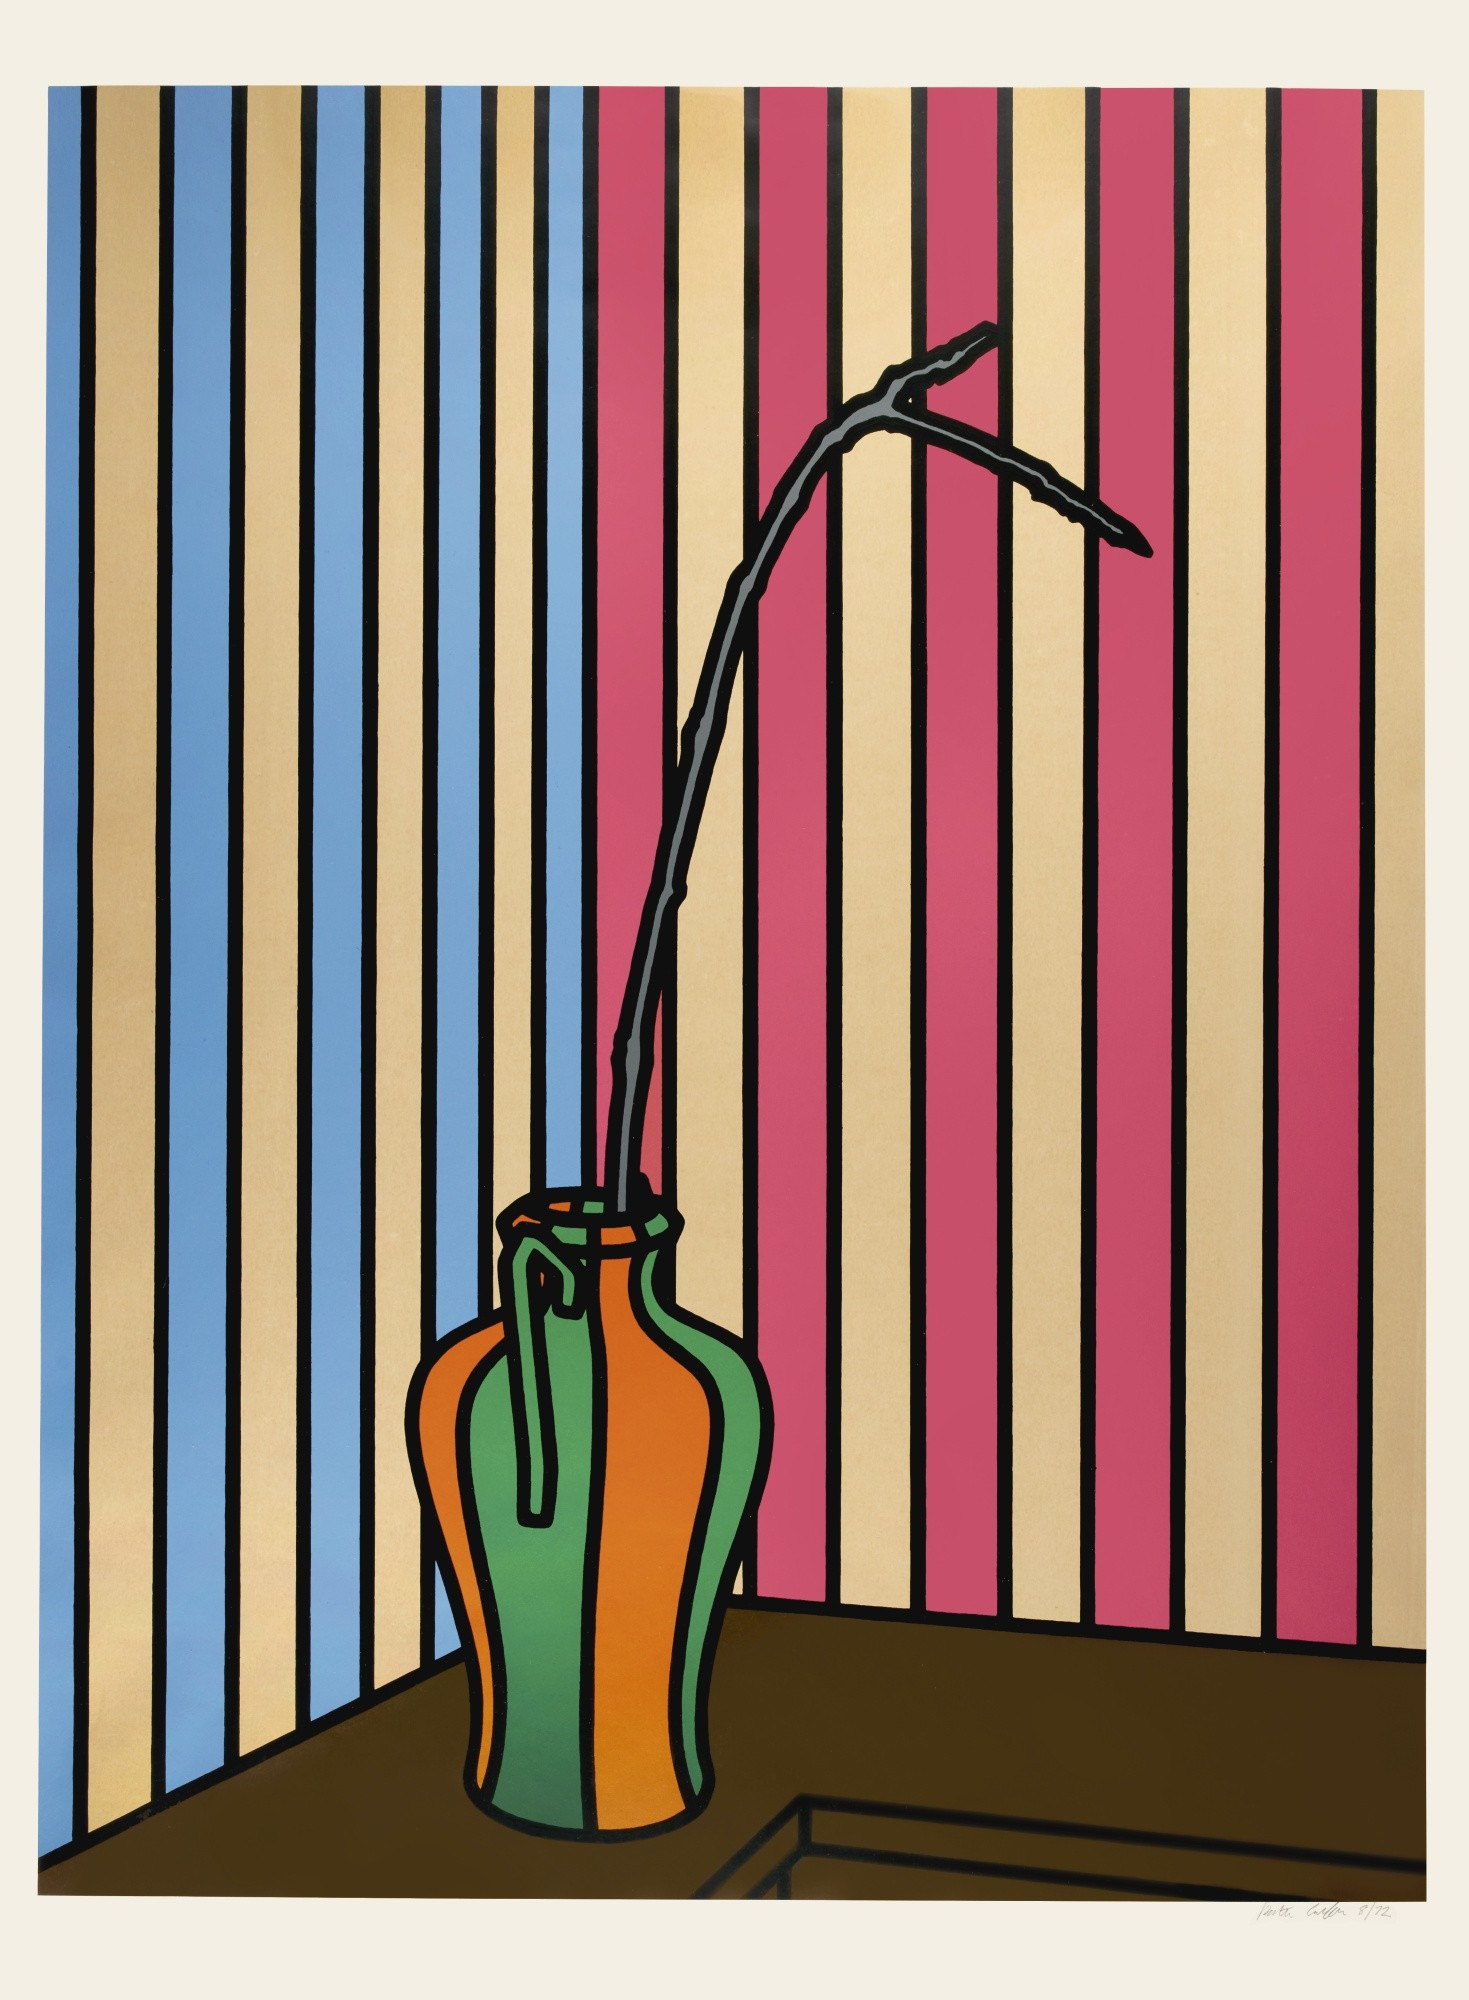 """<span class=""""link fancybox-details-link""""><a href=""""/artists/73-patrick-caulfield/works/990/"""">View Detail Page</a></span><div class=""""artist""""><strong>Patrick Caulfield</strong></div> 1936 - 2005 <div class=""""title""""><em>Fig Branch</em>, 1972</div> <div class=""""signed_and_dated"""">signed and dated<br /> from the edition of 72 with 15 proofs</div> <div class=""""medium"""">screenprint in colour</div> <div class=""""dimensions"""">100.3 x 74.5 cm</div> <div class=""""edition_details""""></div><div class=""""copyright_line"""">Copyright The Artist</div>"""